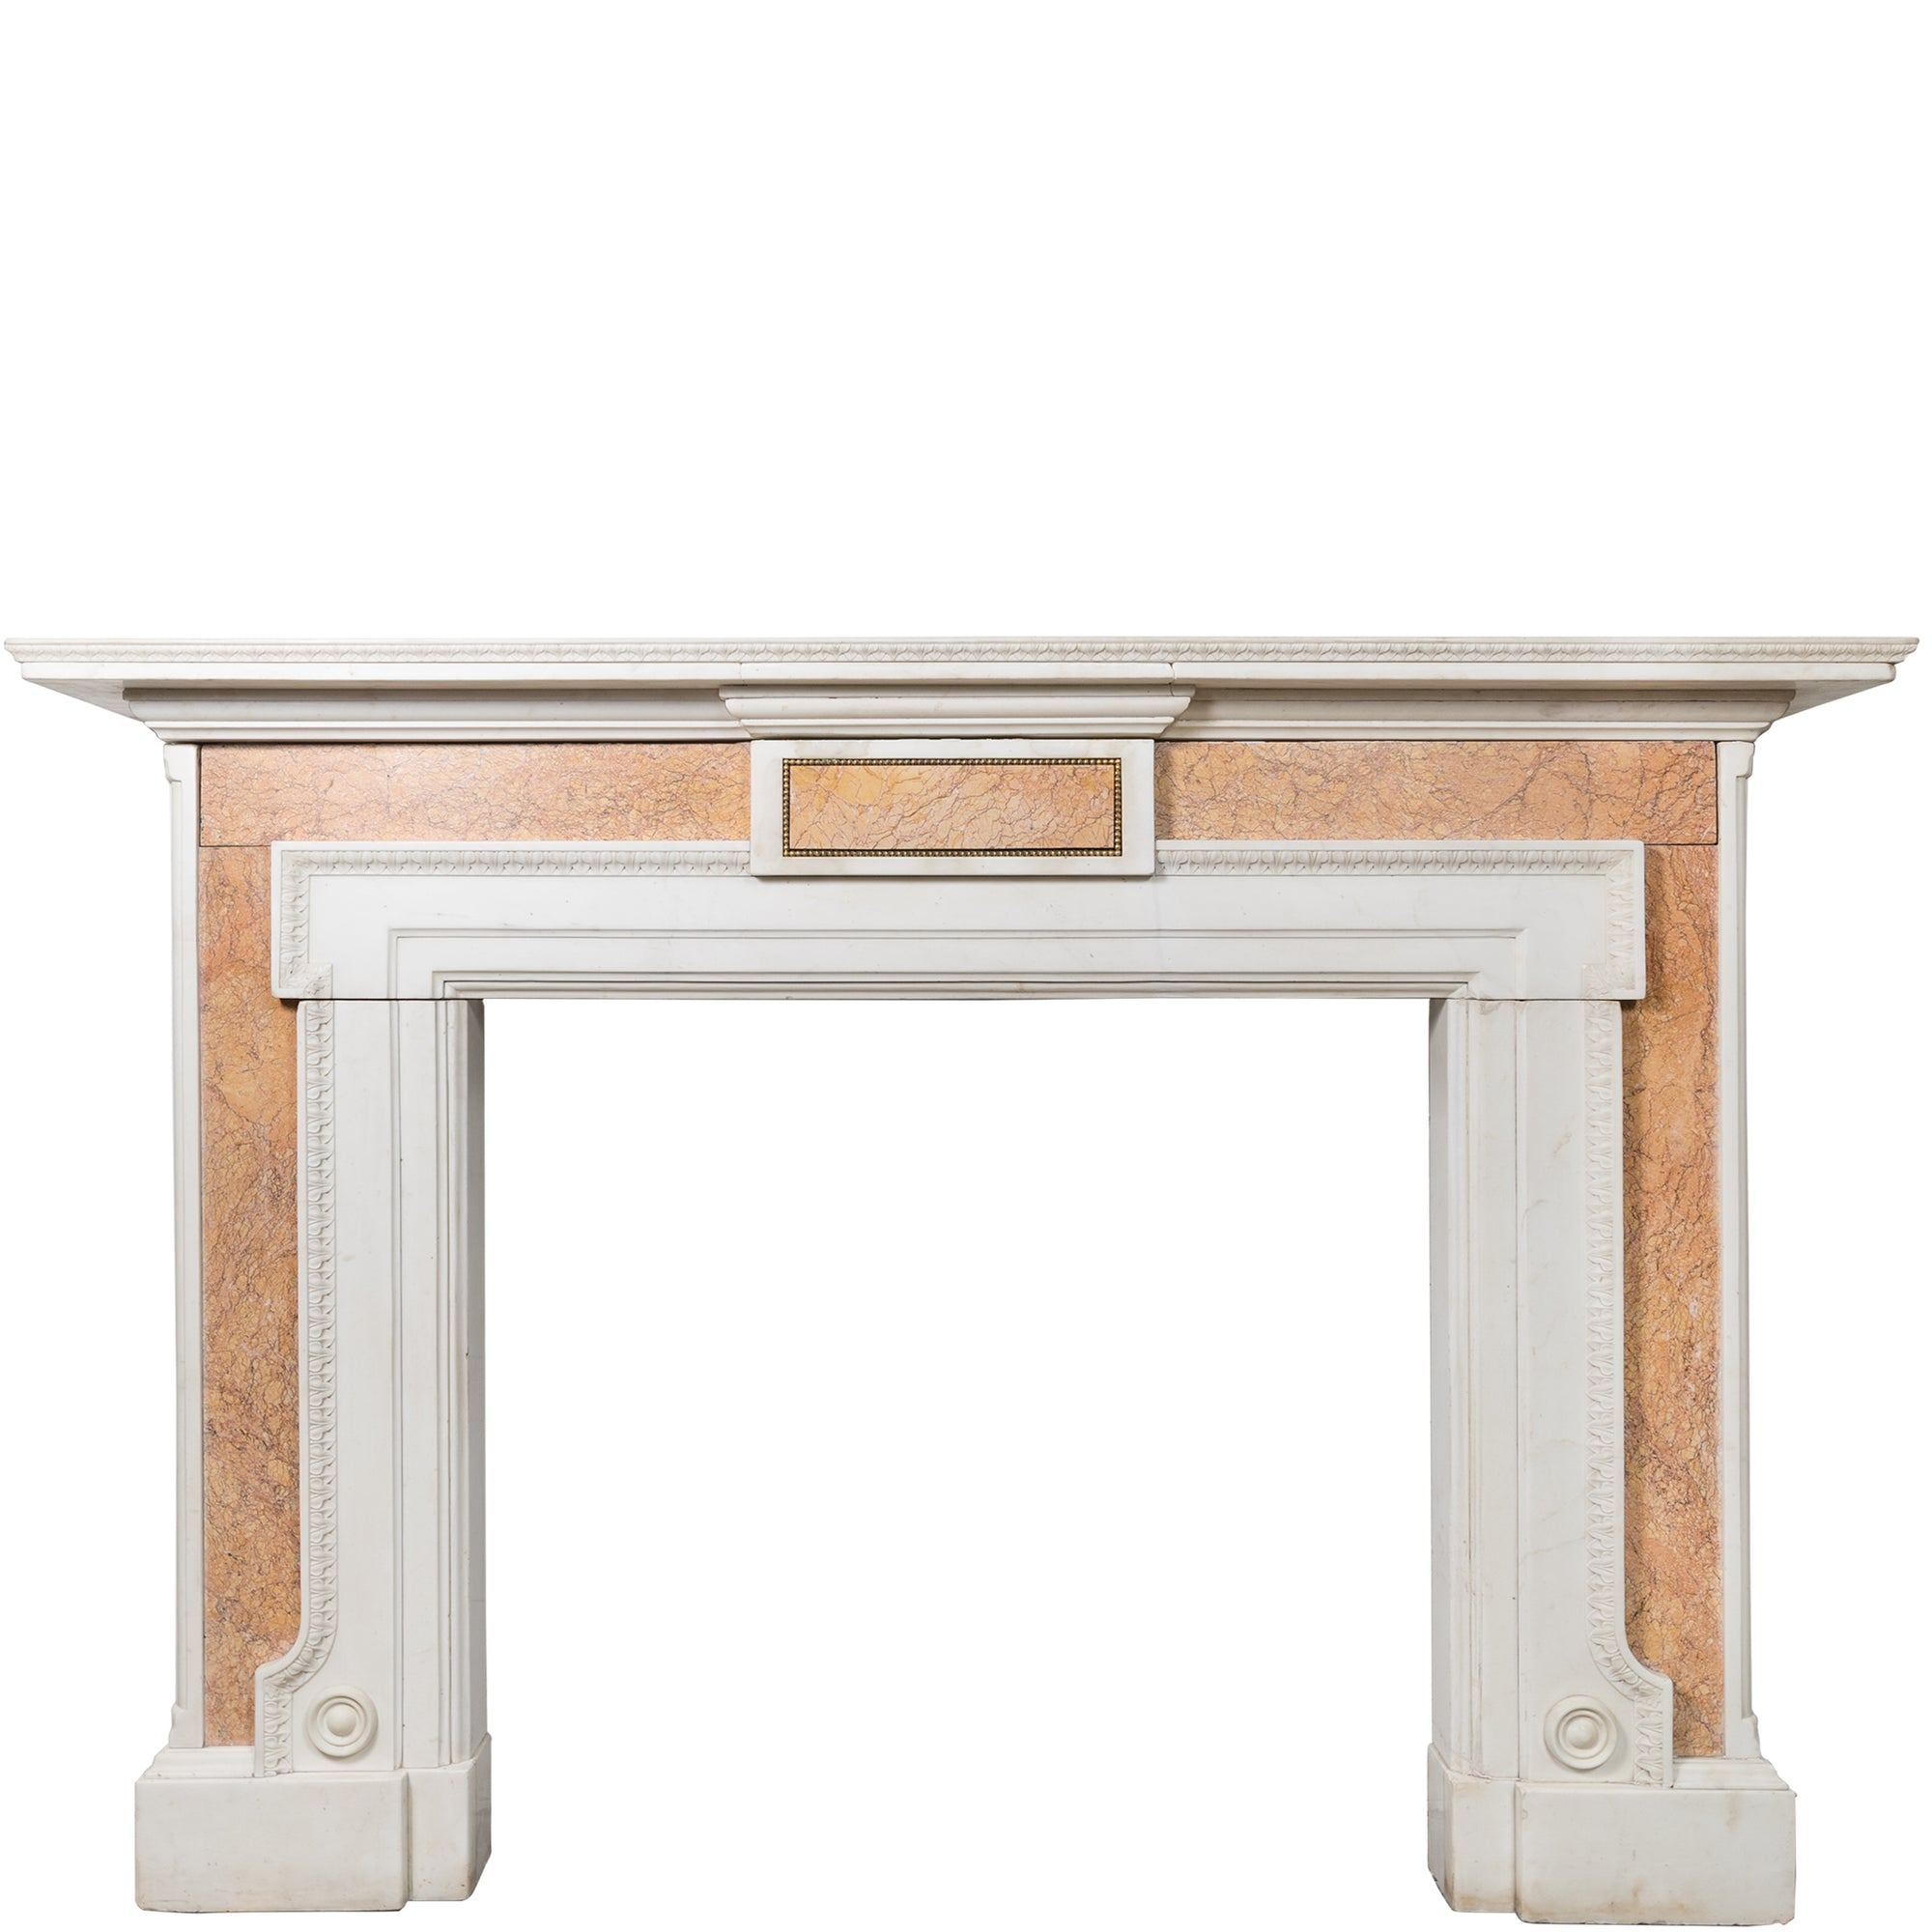 Antique Brocatelle Marble Fireplace Surround | The Architectural Forum